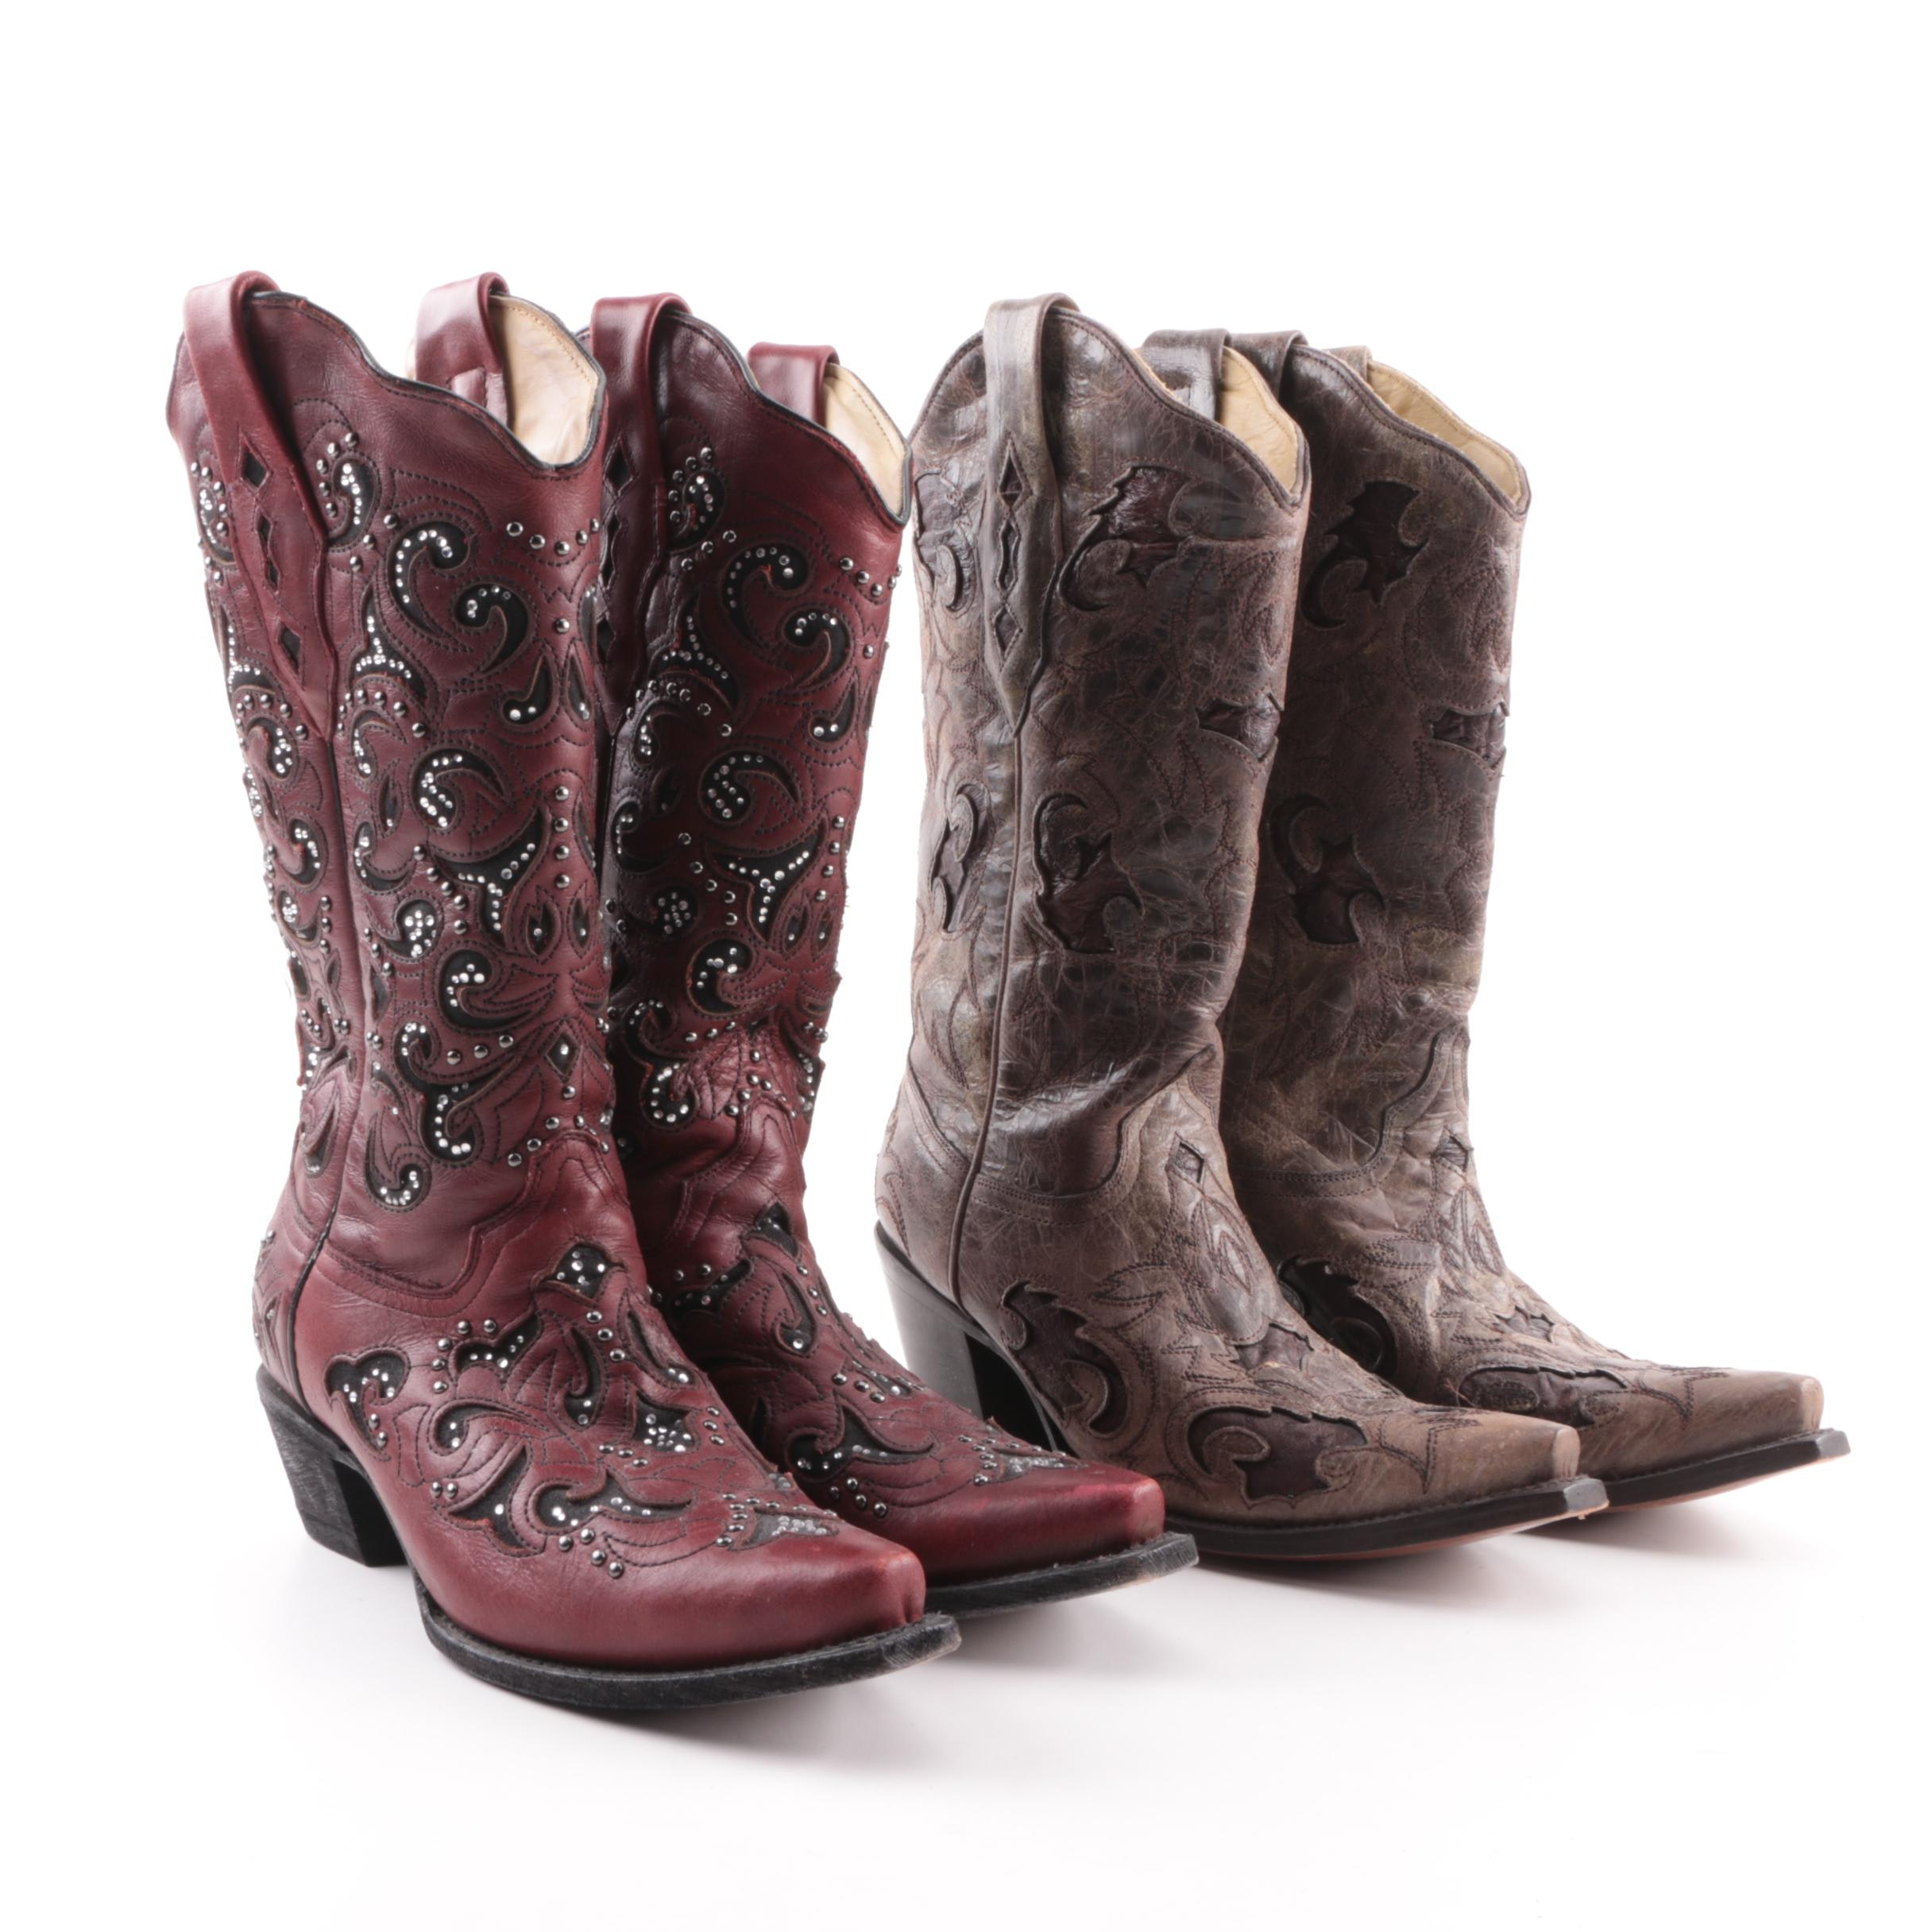 Women's Corral Leather Western Boots Made in Mexico